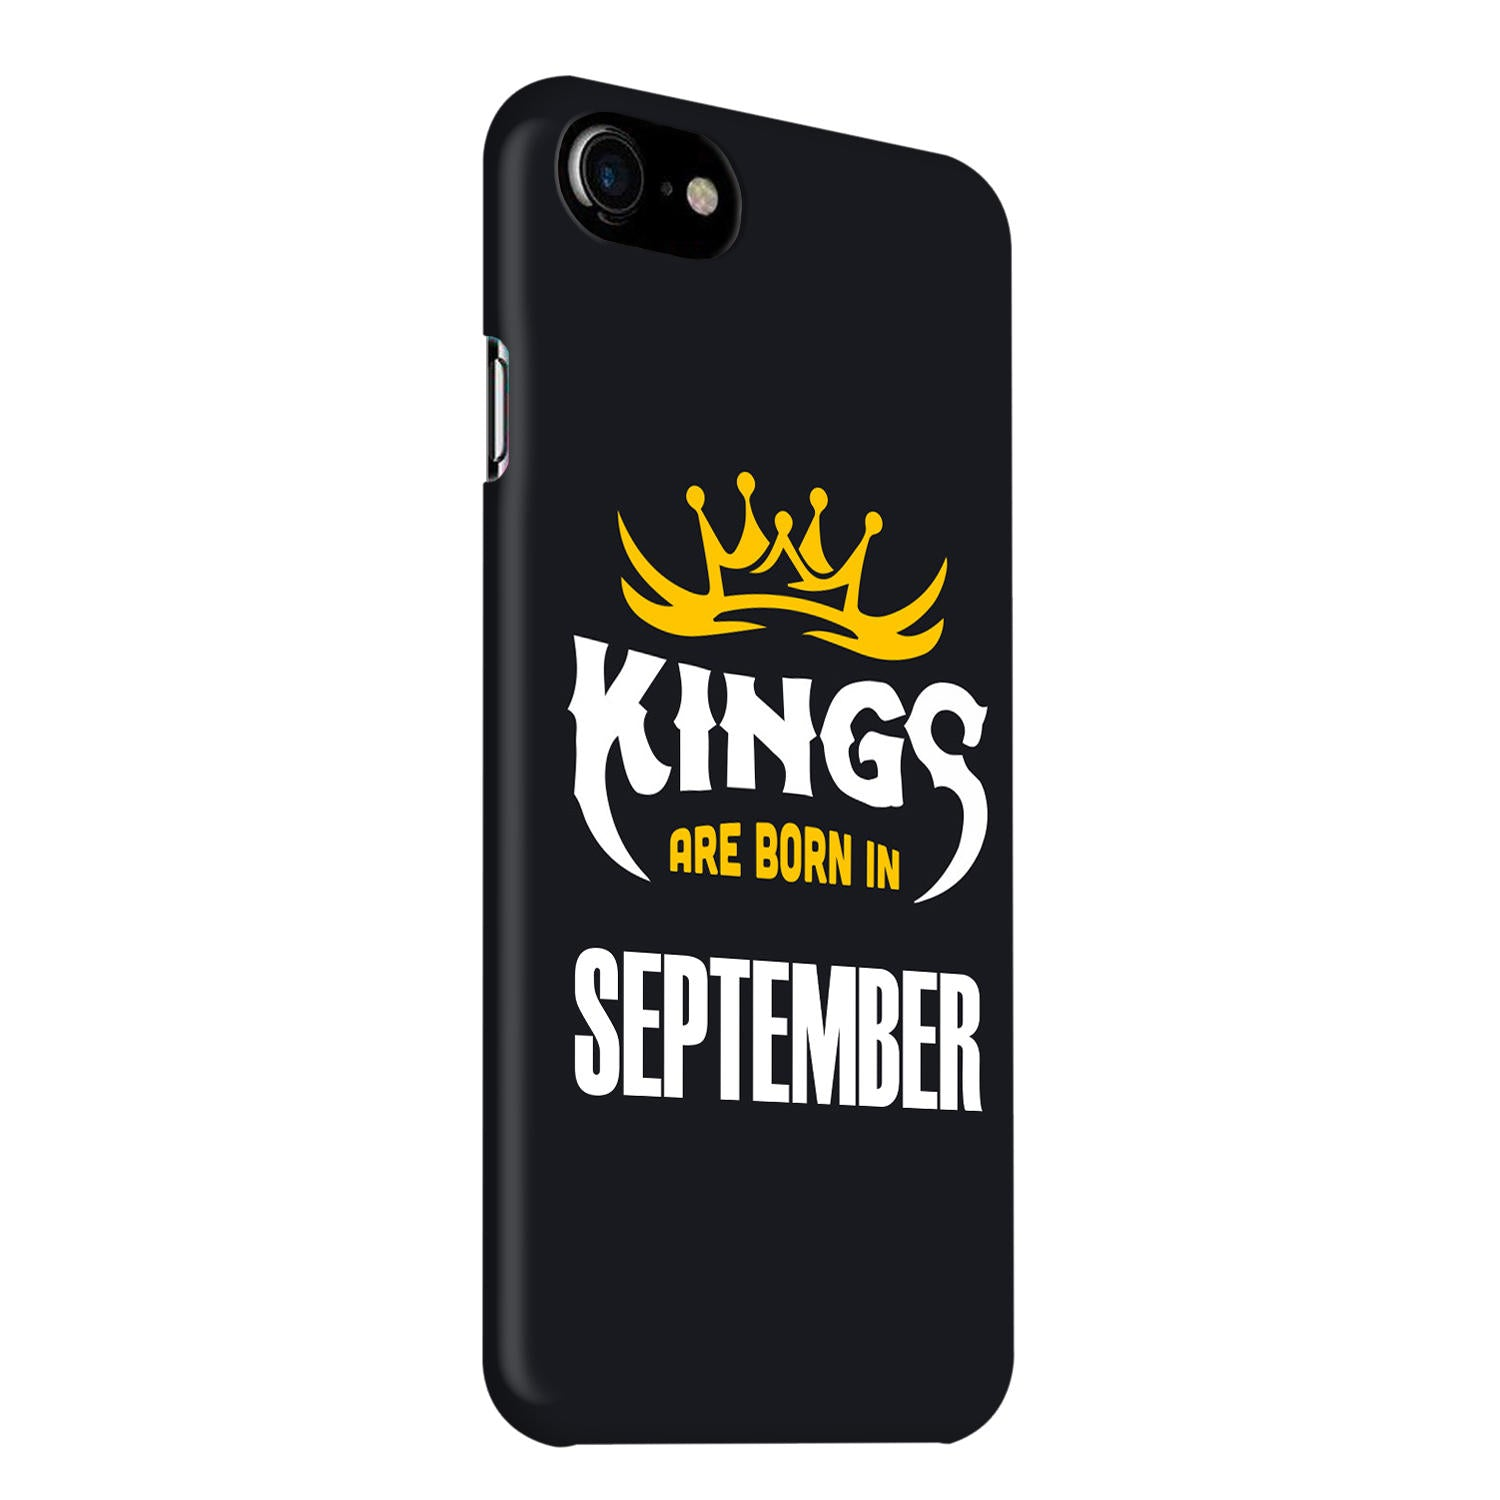 Kings September - Narcissist iPhone 7 Mobile Cover Case - MADANYU